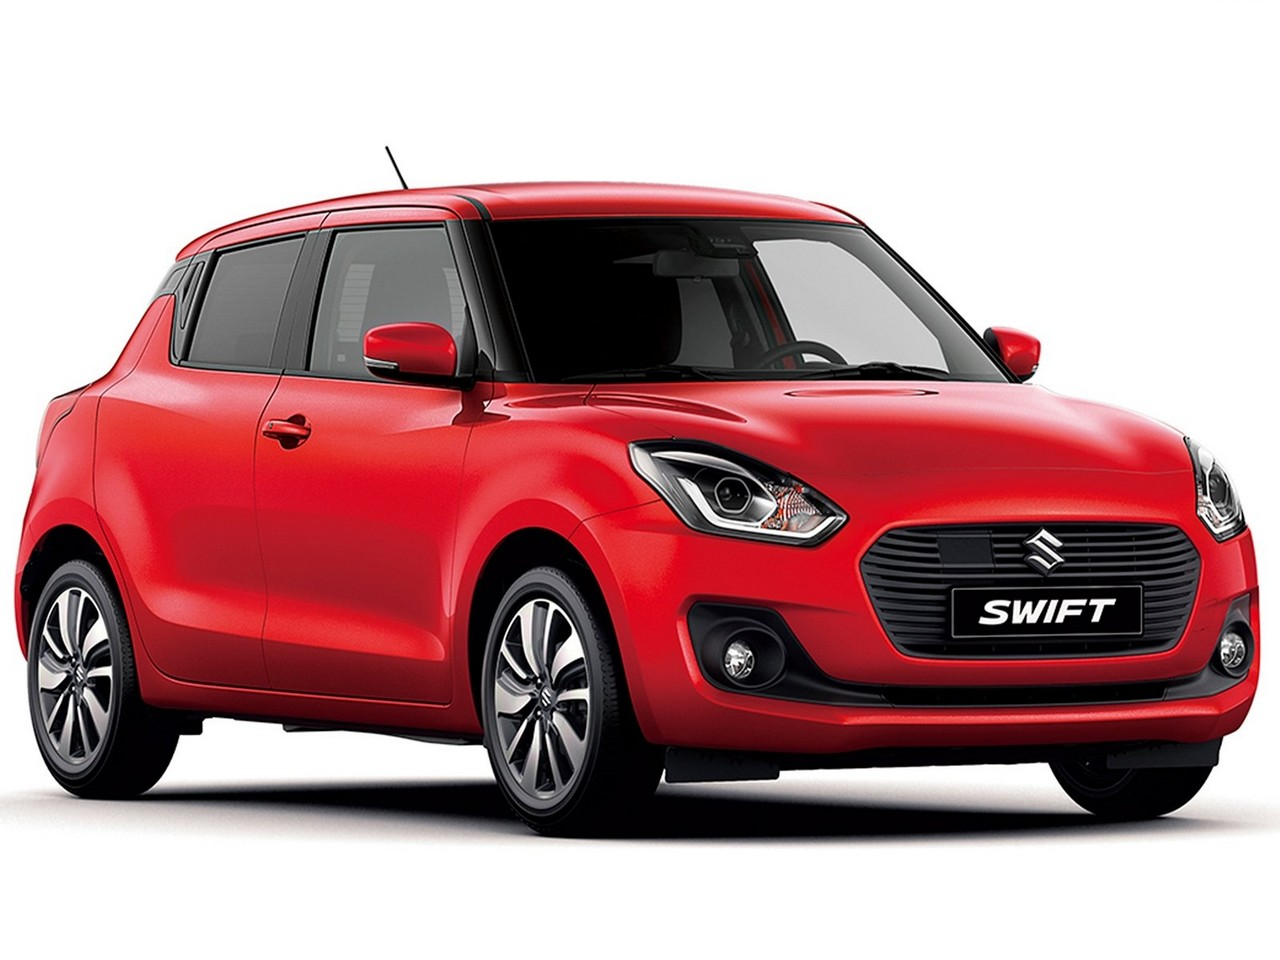 la nouvelle suzuki swift 2018 maruti suzuki swift en version 5 portes photoscar nice cars. Black Bedroom Furniture Sets. Home Design Ideas